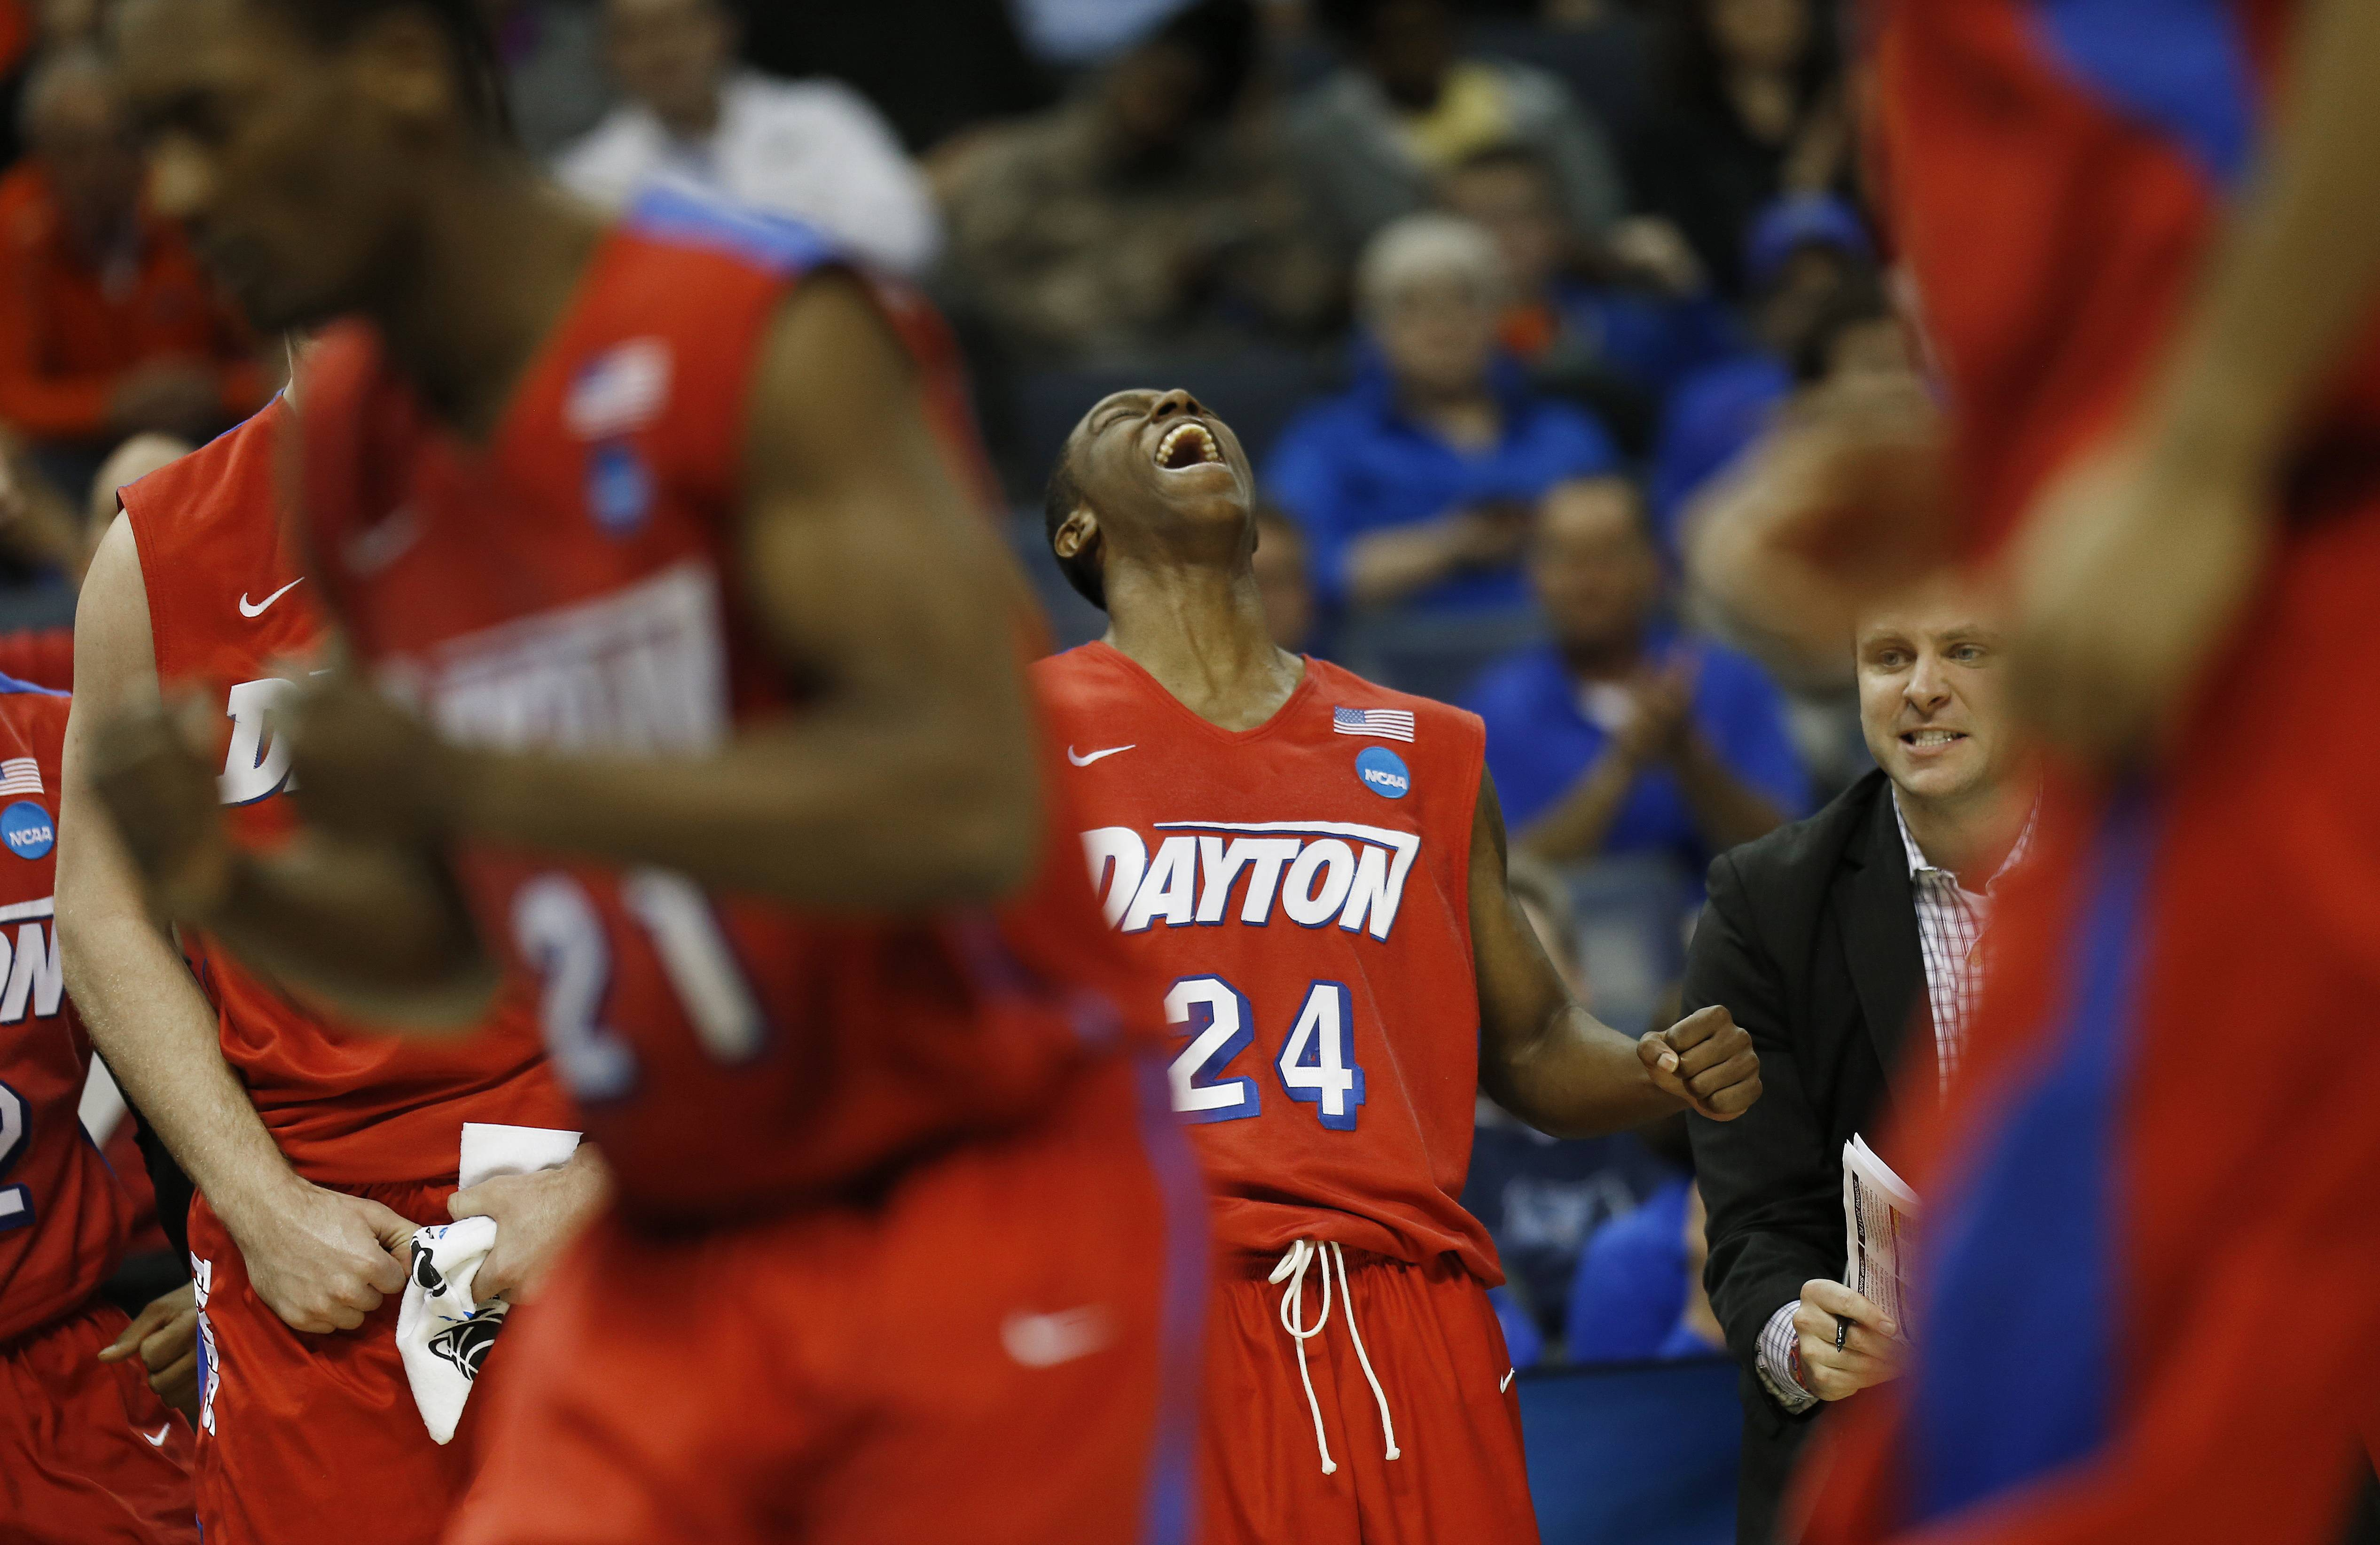 Dayton guard Jordan Sibert (24) celebrates a three-point shot against Stanford during the second half in a regional semifinal game at the NCAA college basketball tournament, Thursday, March 27, 2014, in Memphis, Tenn. Dayton won 82-72.